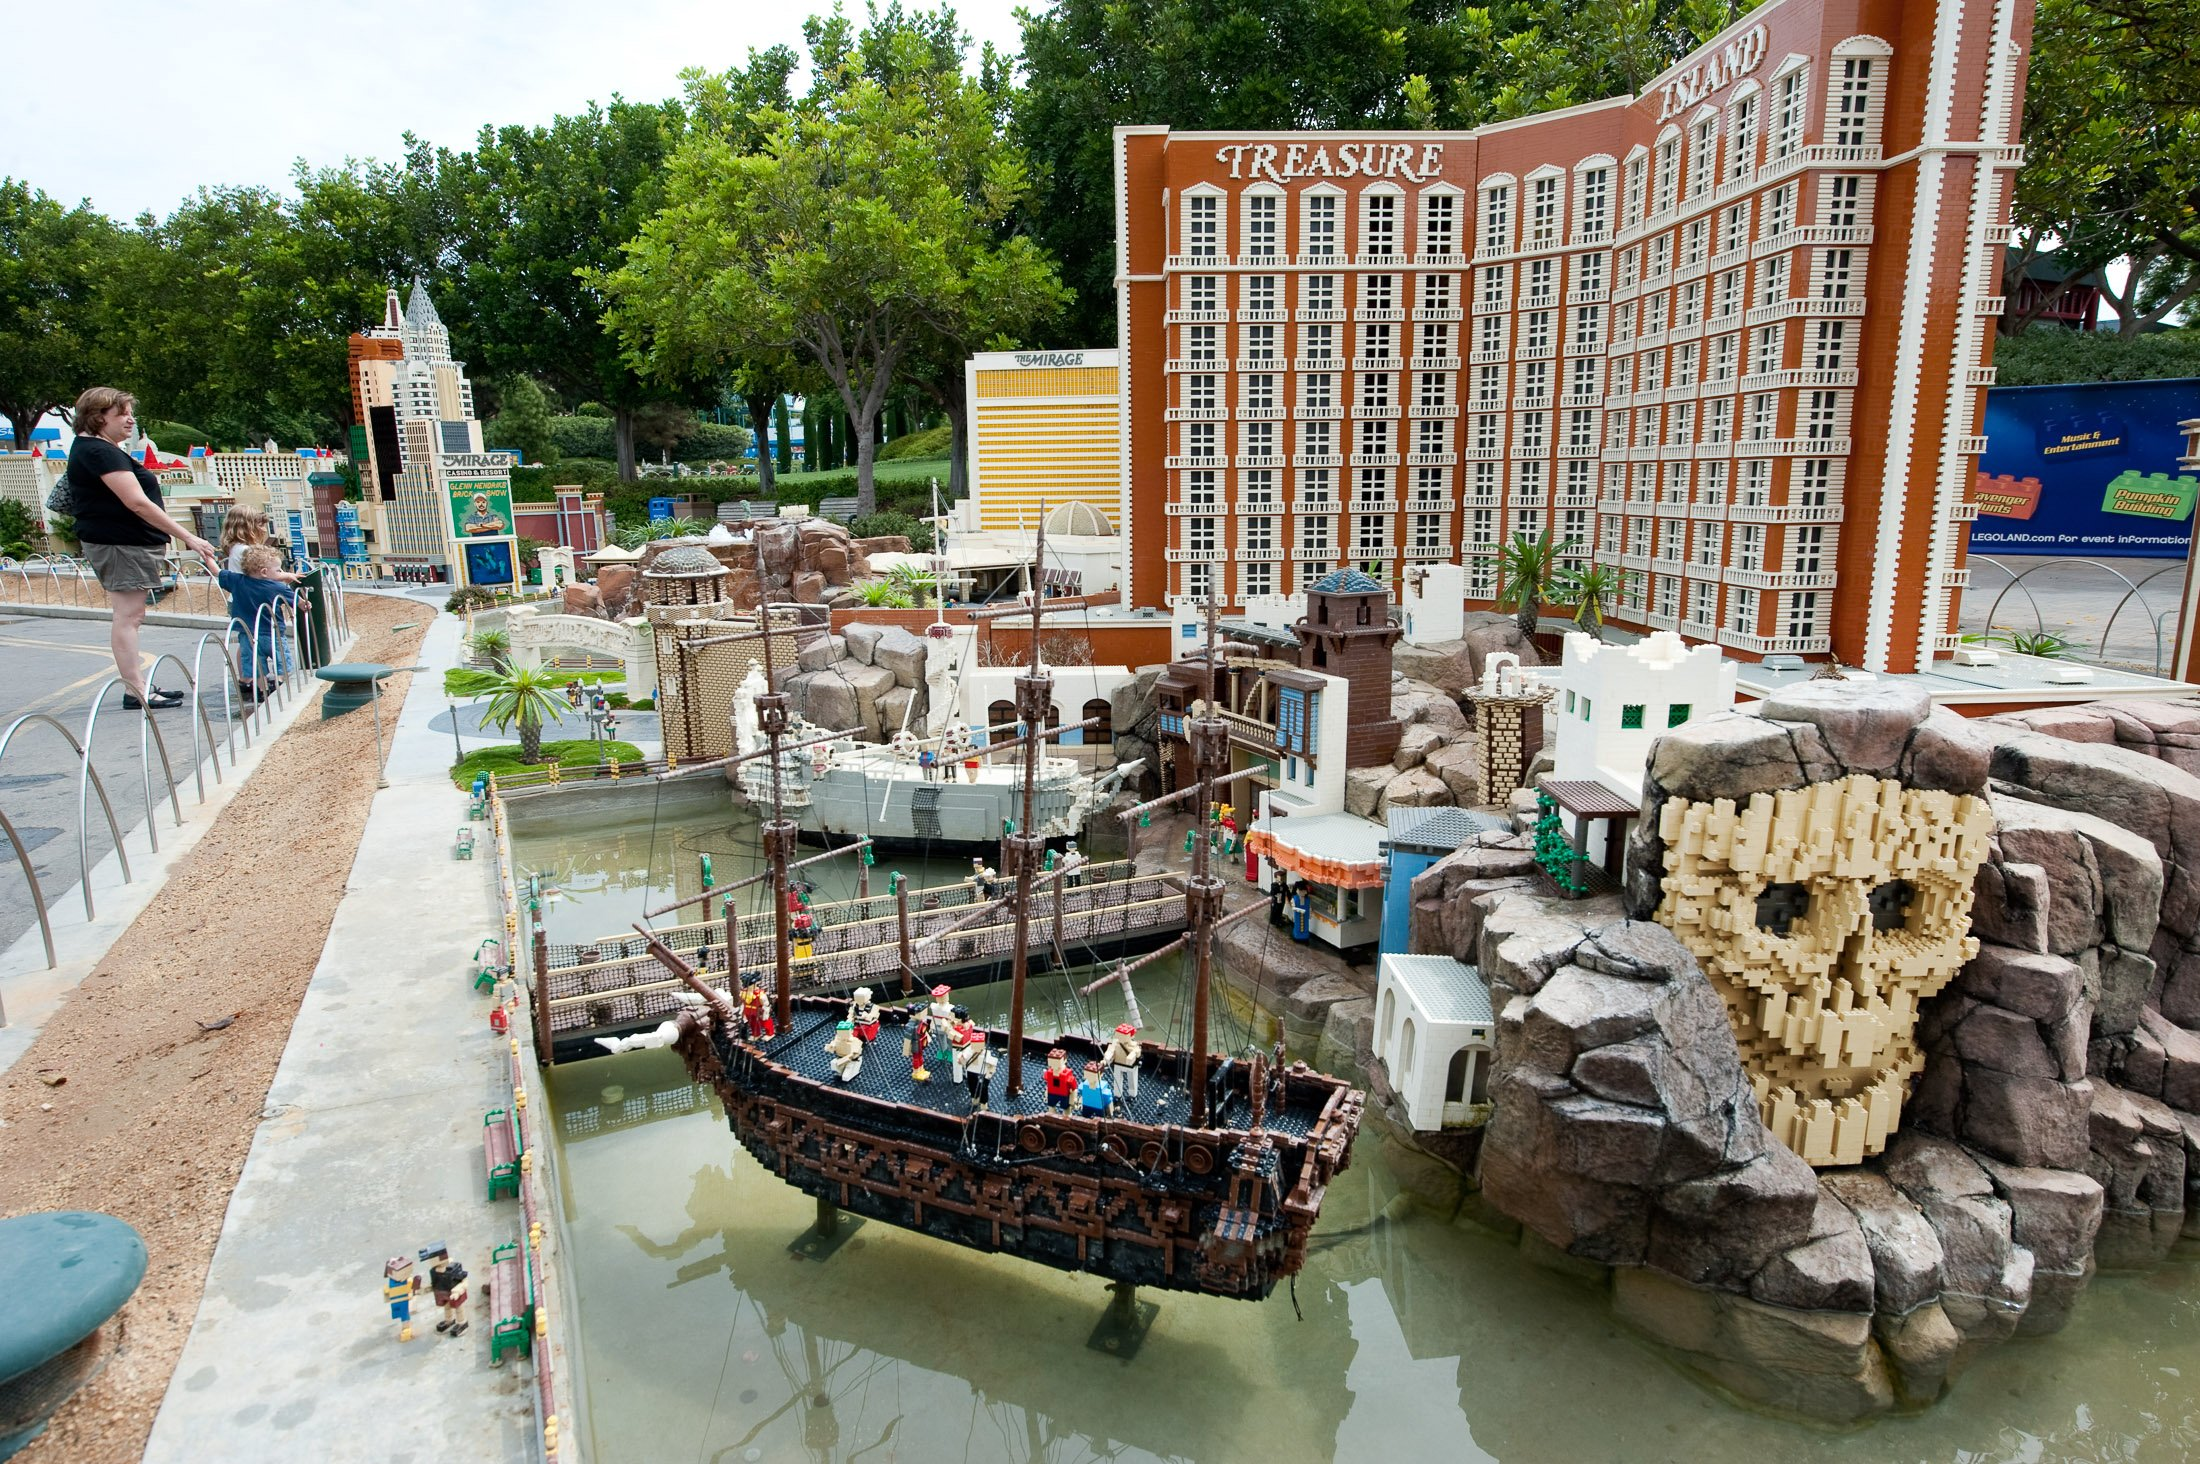 LEGOLAND makes a perfect family vacation in California